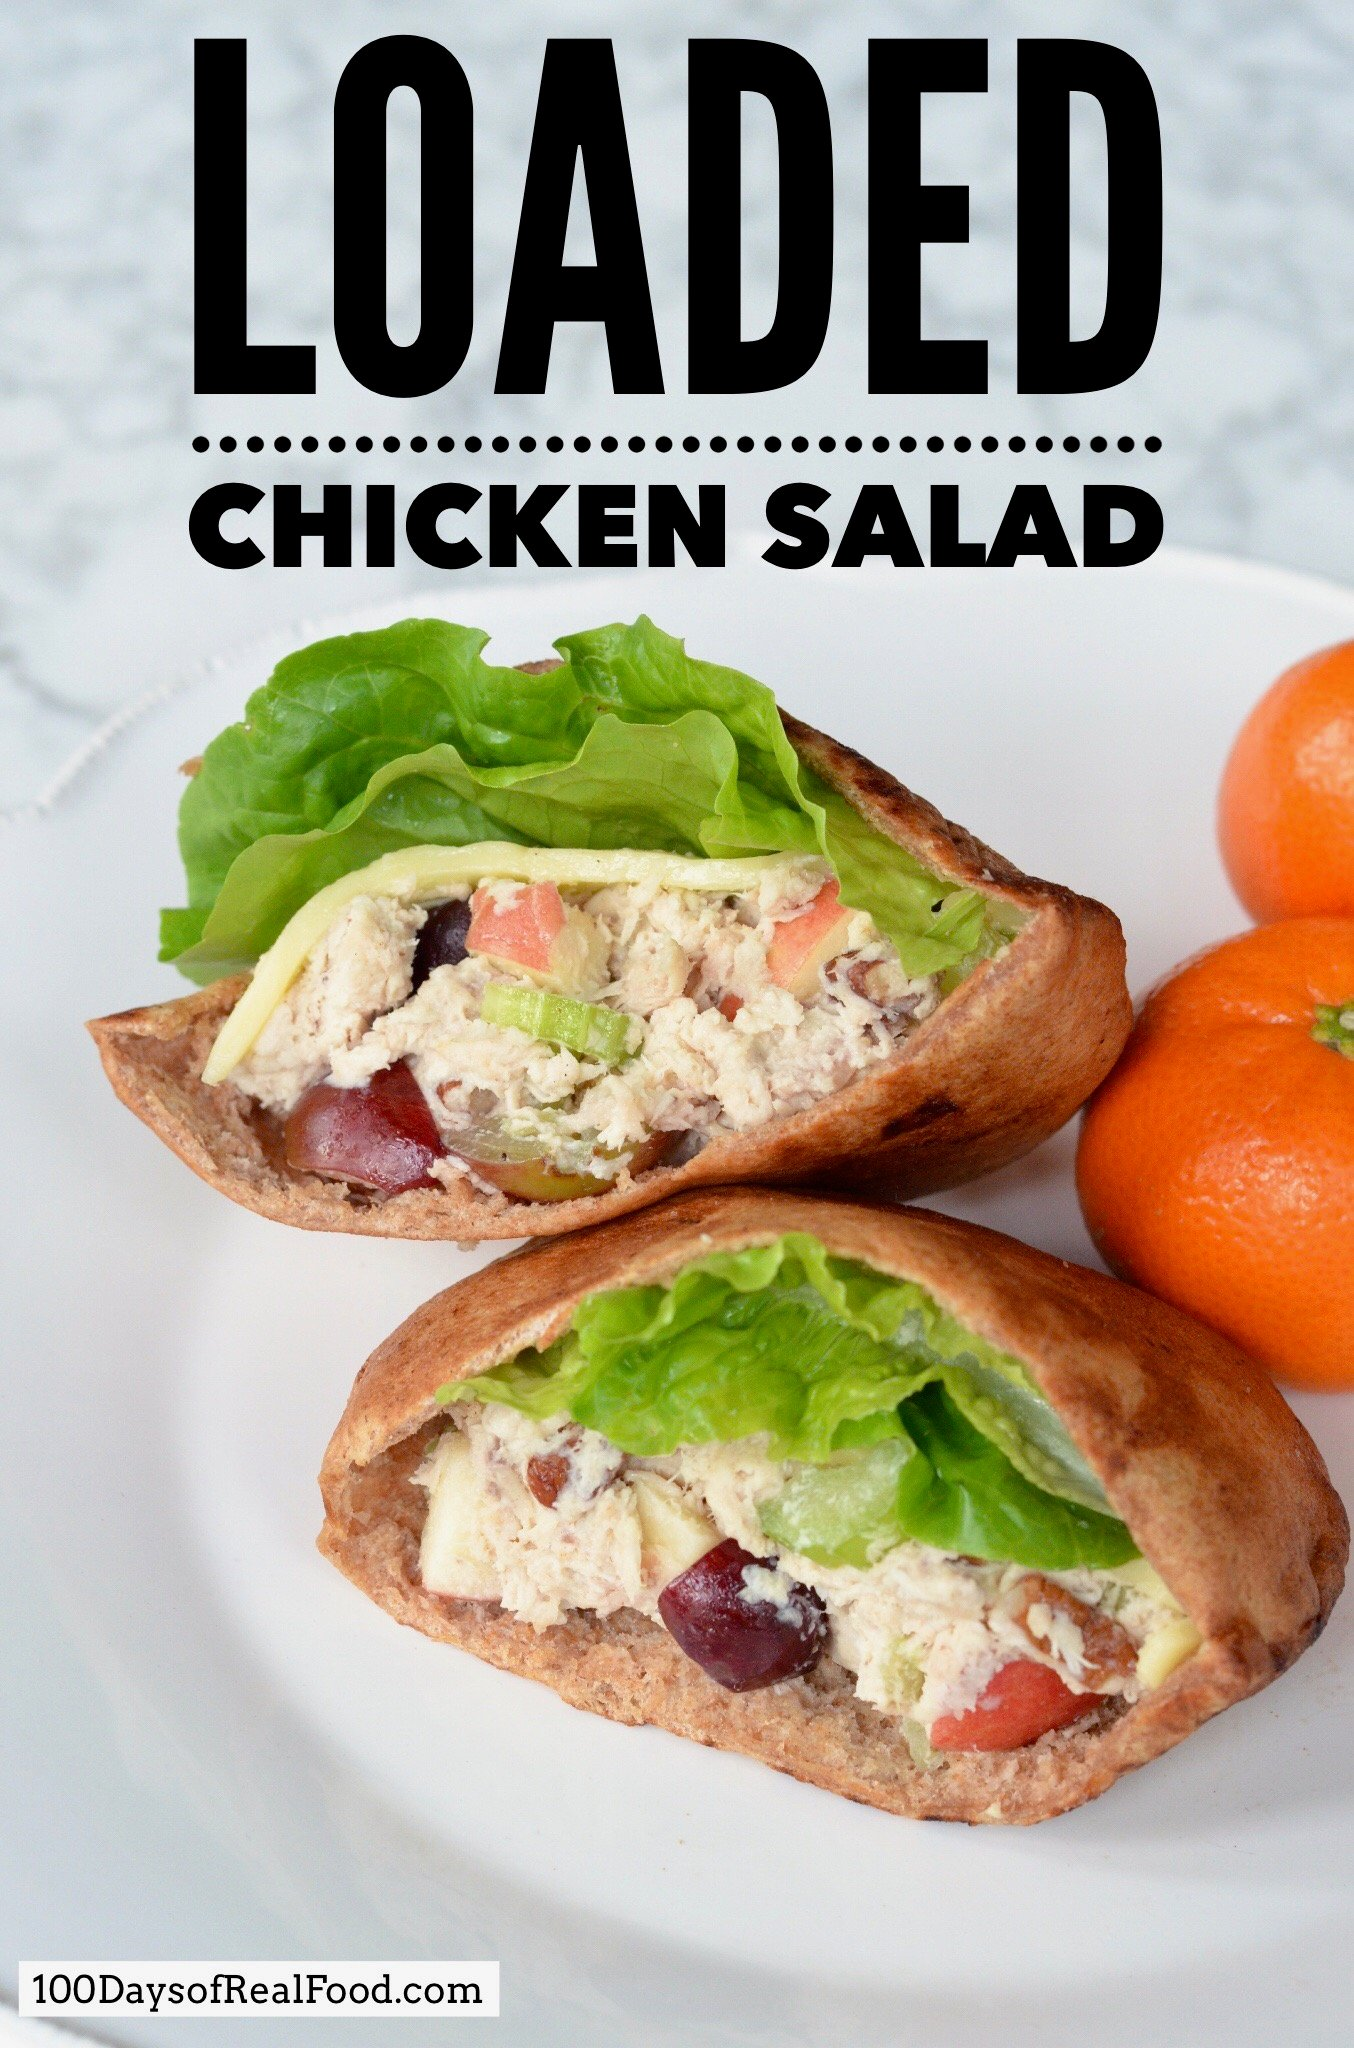 Two loaded chicken salads in pita pouches on a plate with oranges.